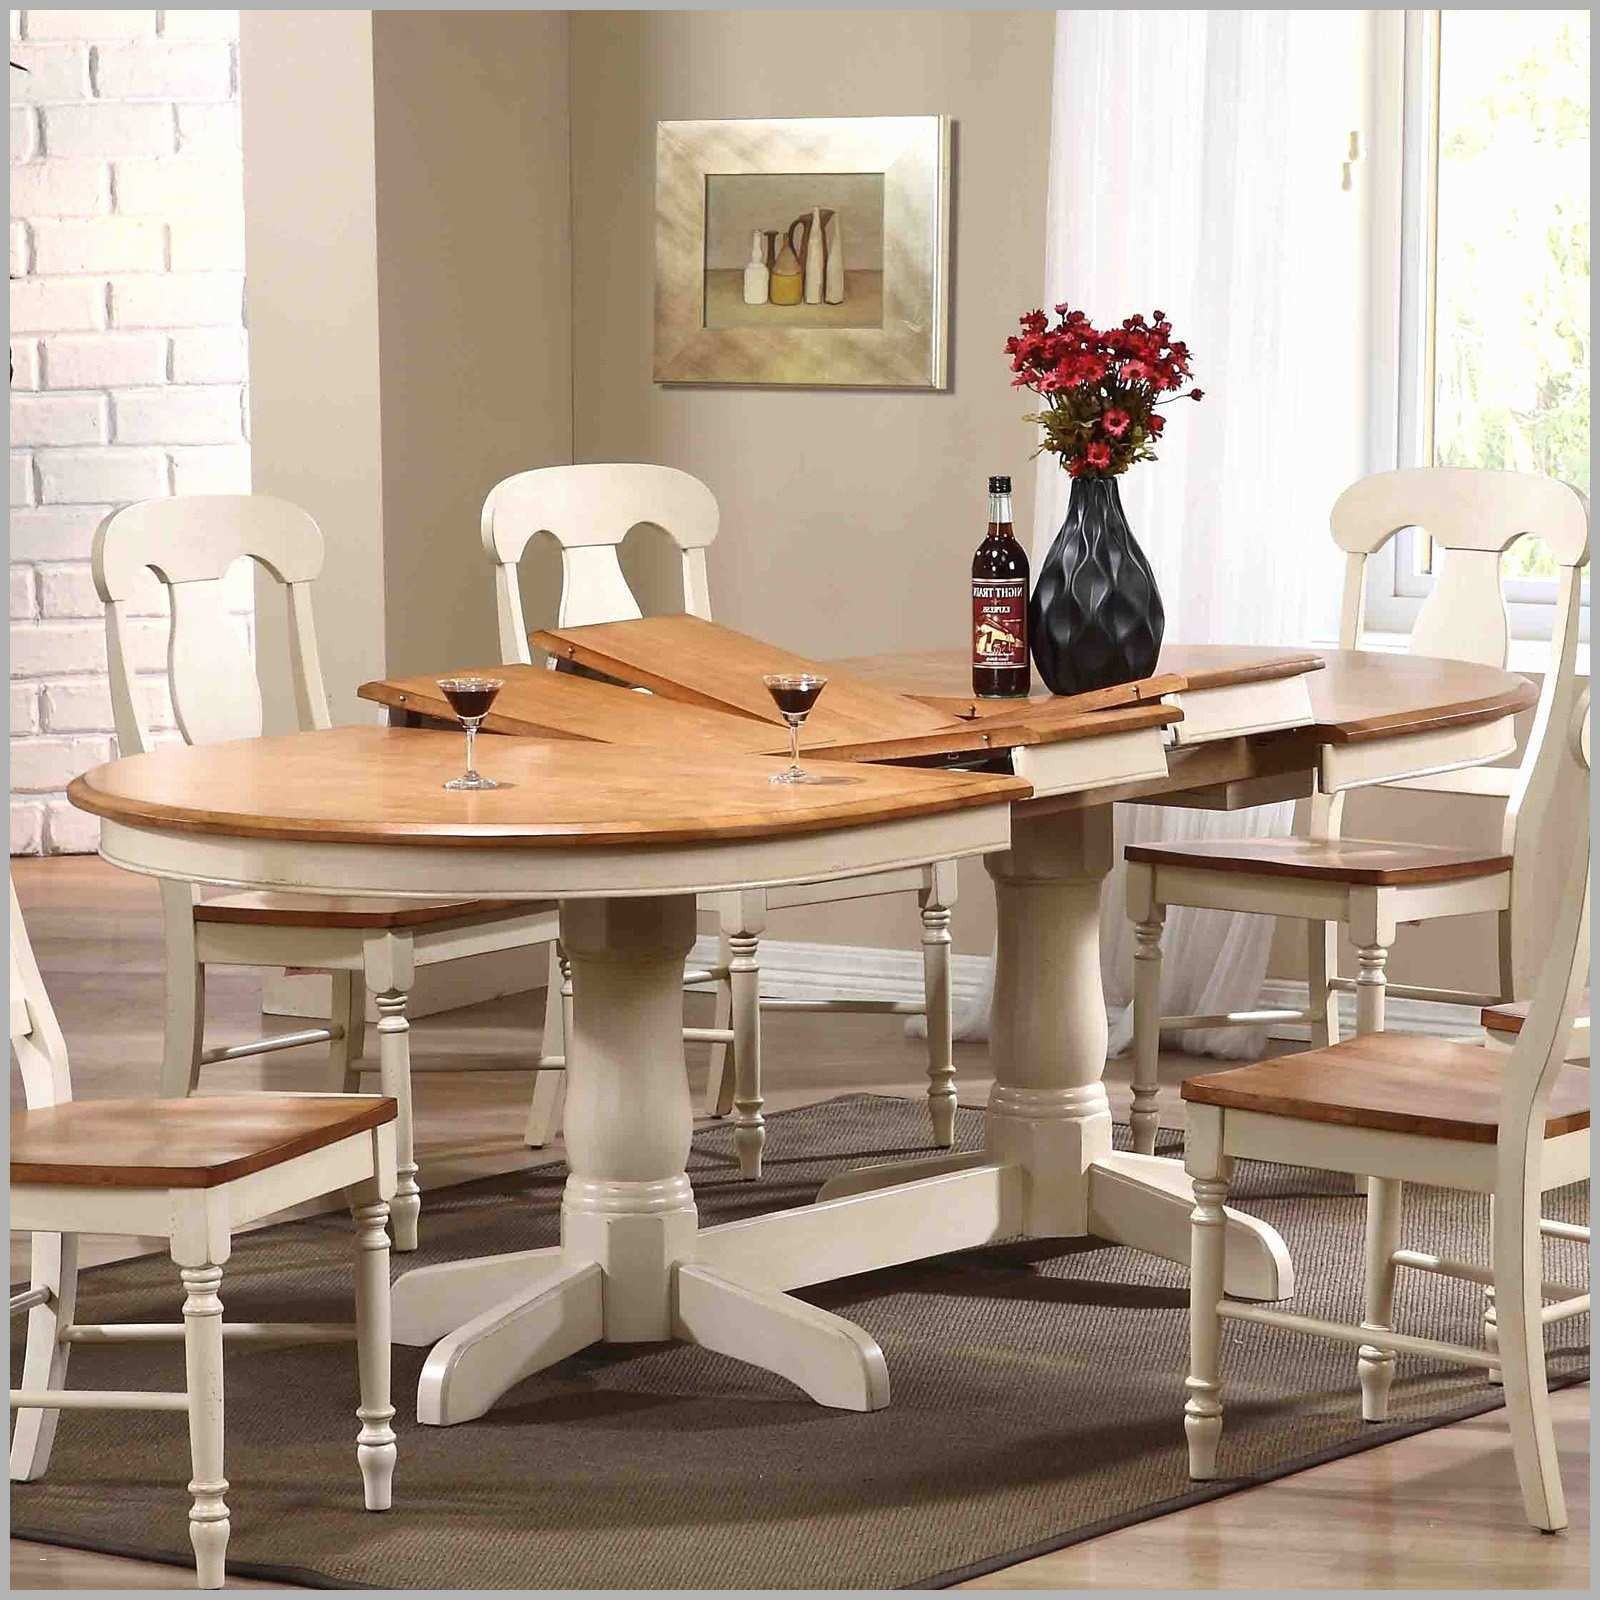 New Oval Farmhouse Kitchen Table With Extension Furniture Biscotti